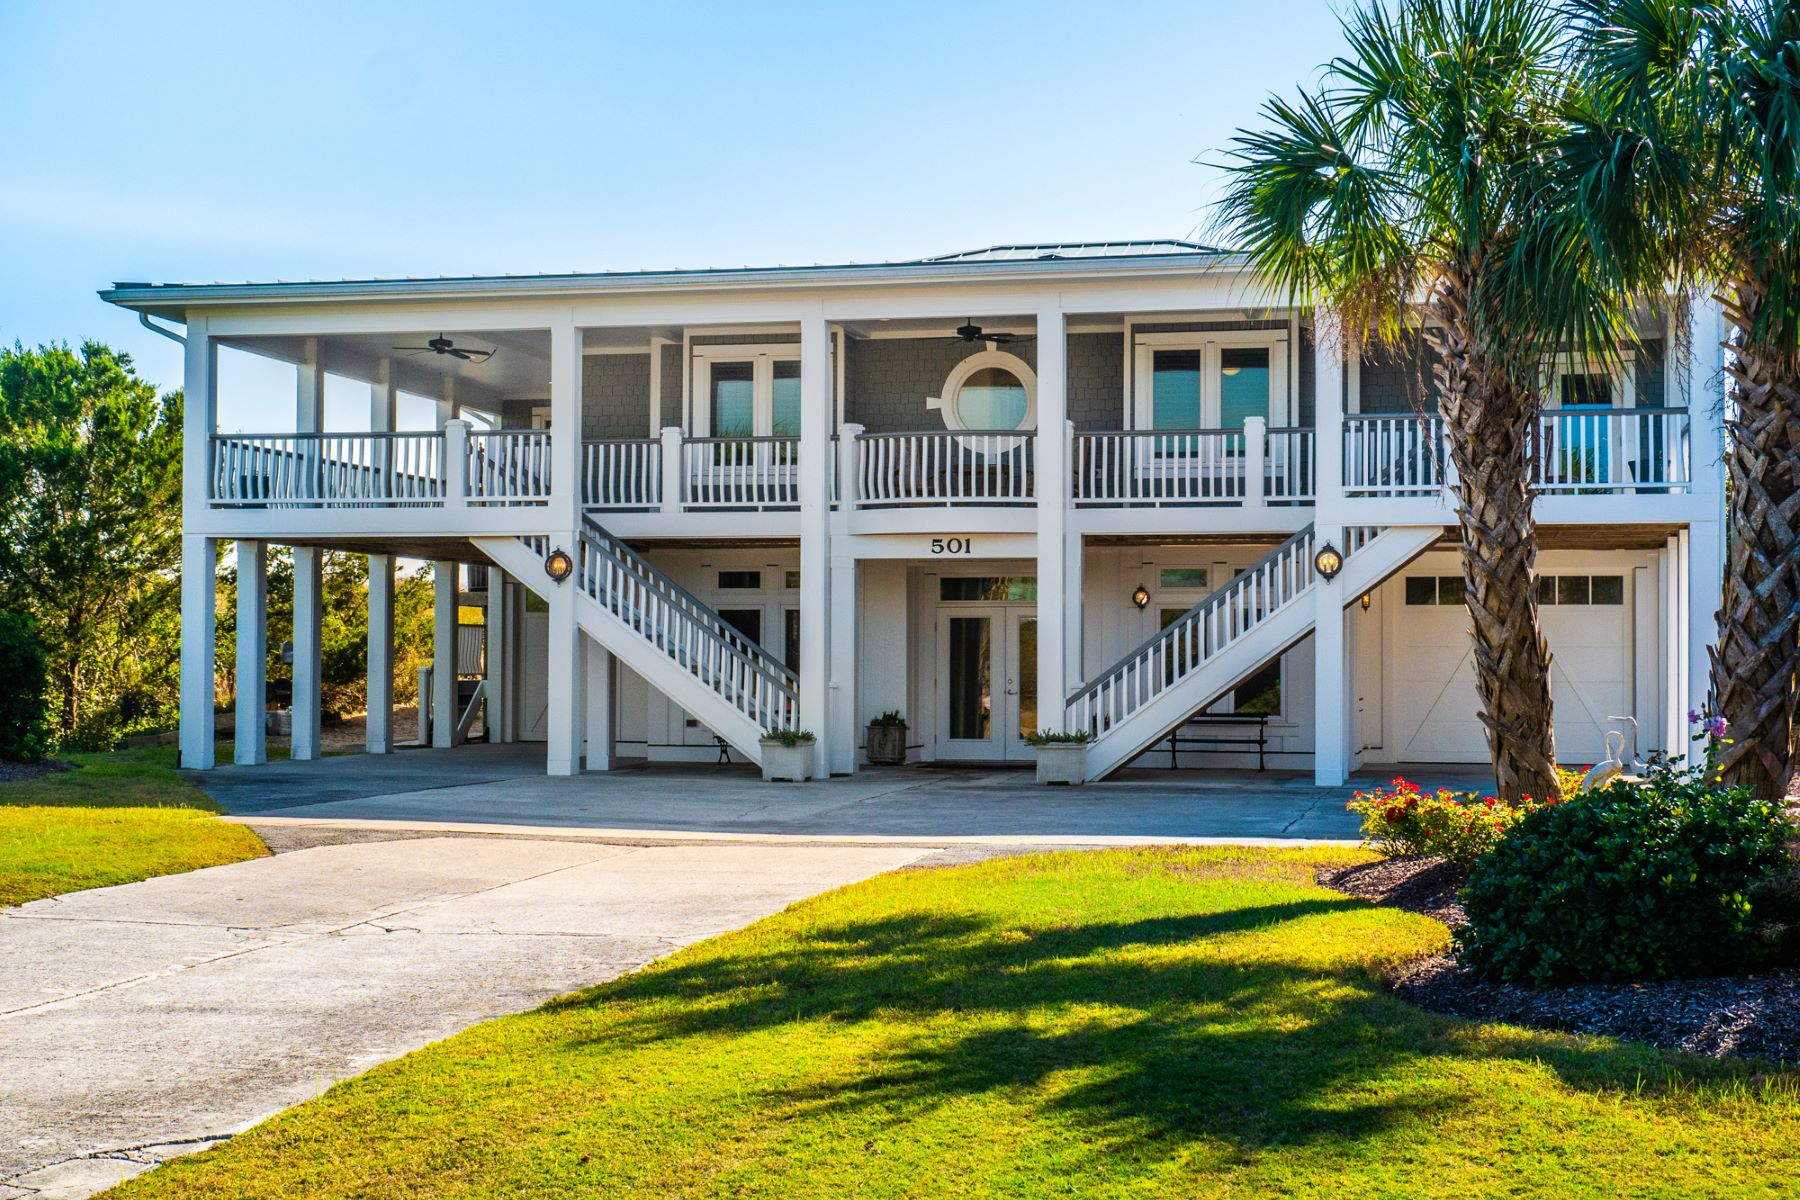 Single Family Homes for Sale at Luxury Oceanfront on South Anderson 501 S Anderson Blvd Topsail Beach, North Carolina 28445 United States